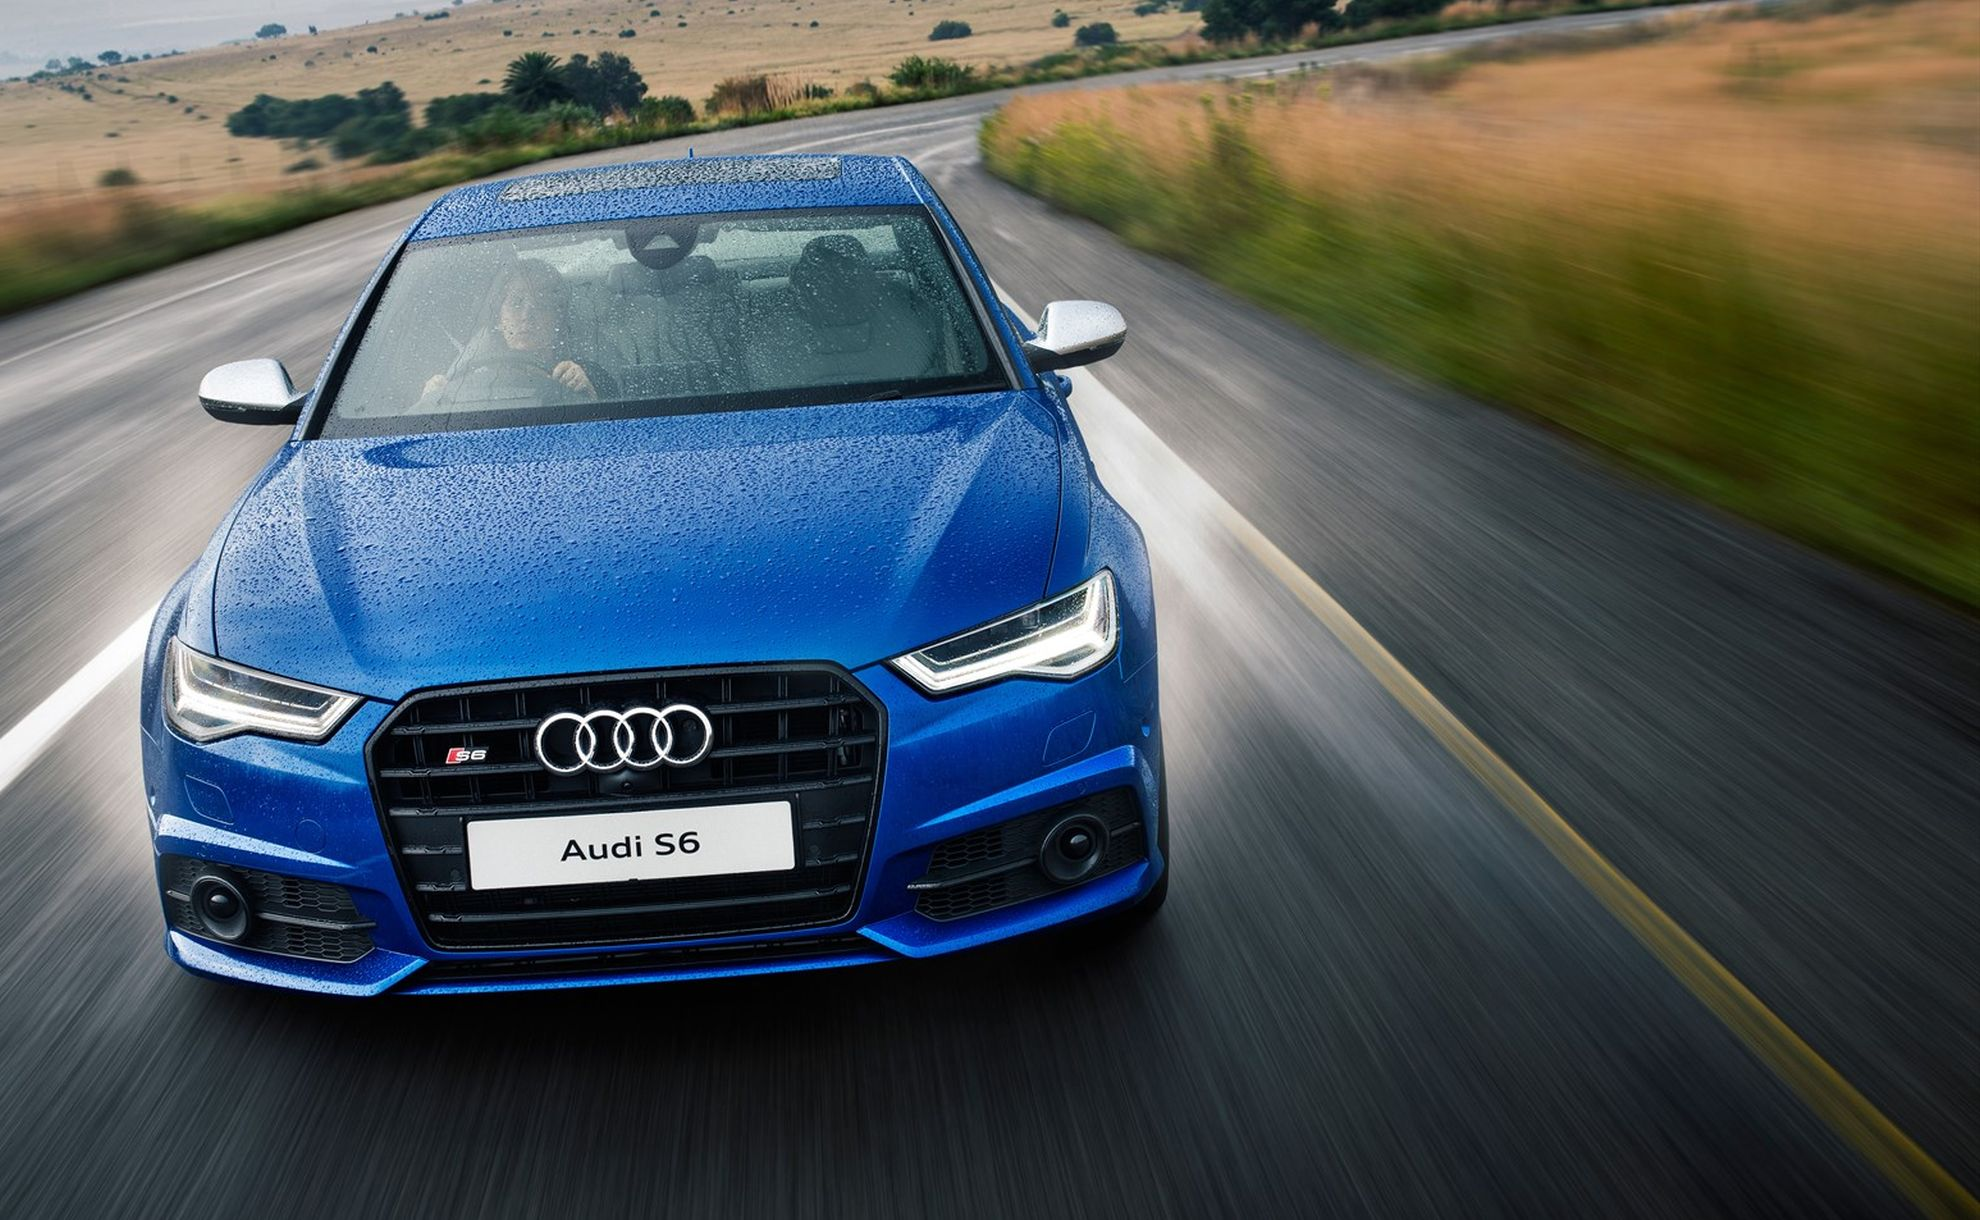 Improved-power-and-styling-the-new-Audi-A6-and-Audi-A7-Sportback-S6